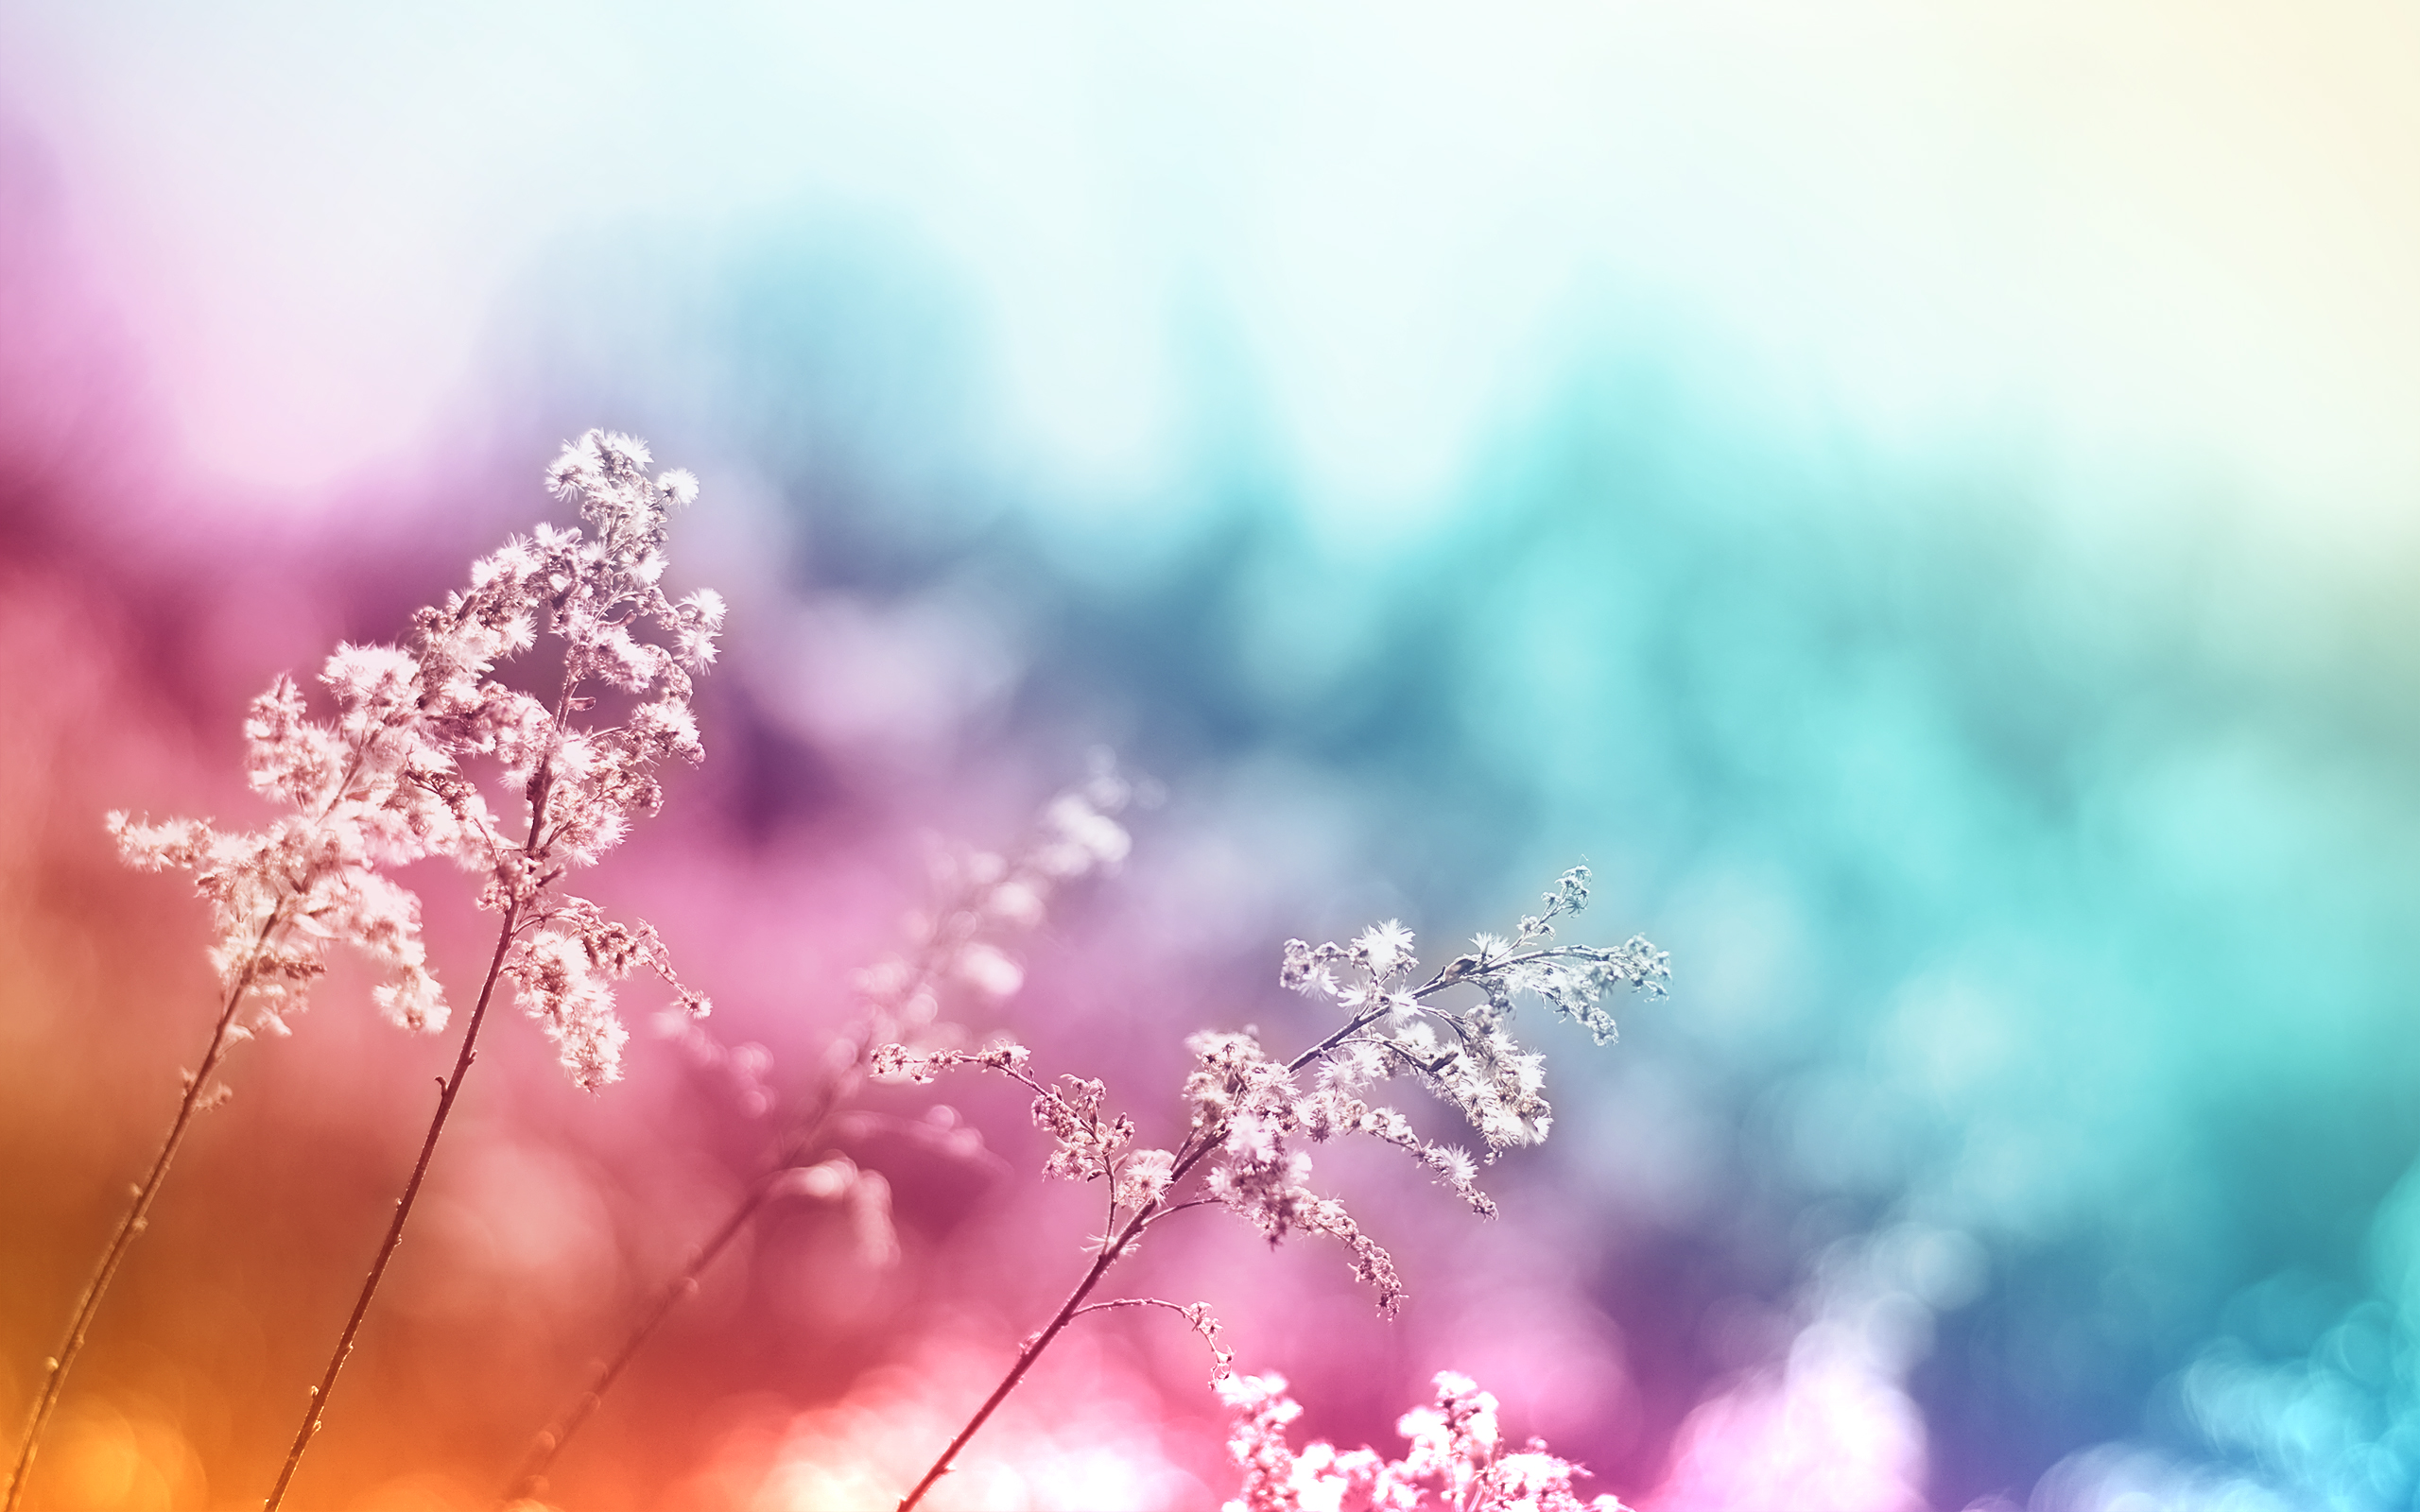 Abstract Colorful Desktop Background Wallpaper 2560x1600